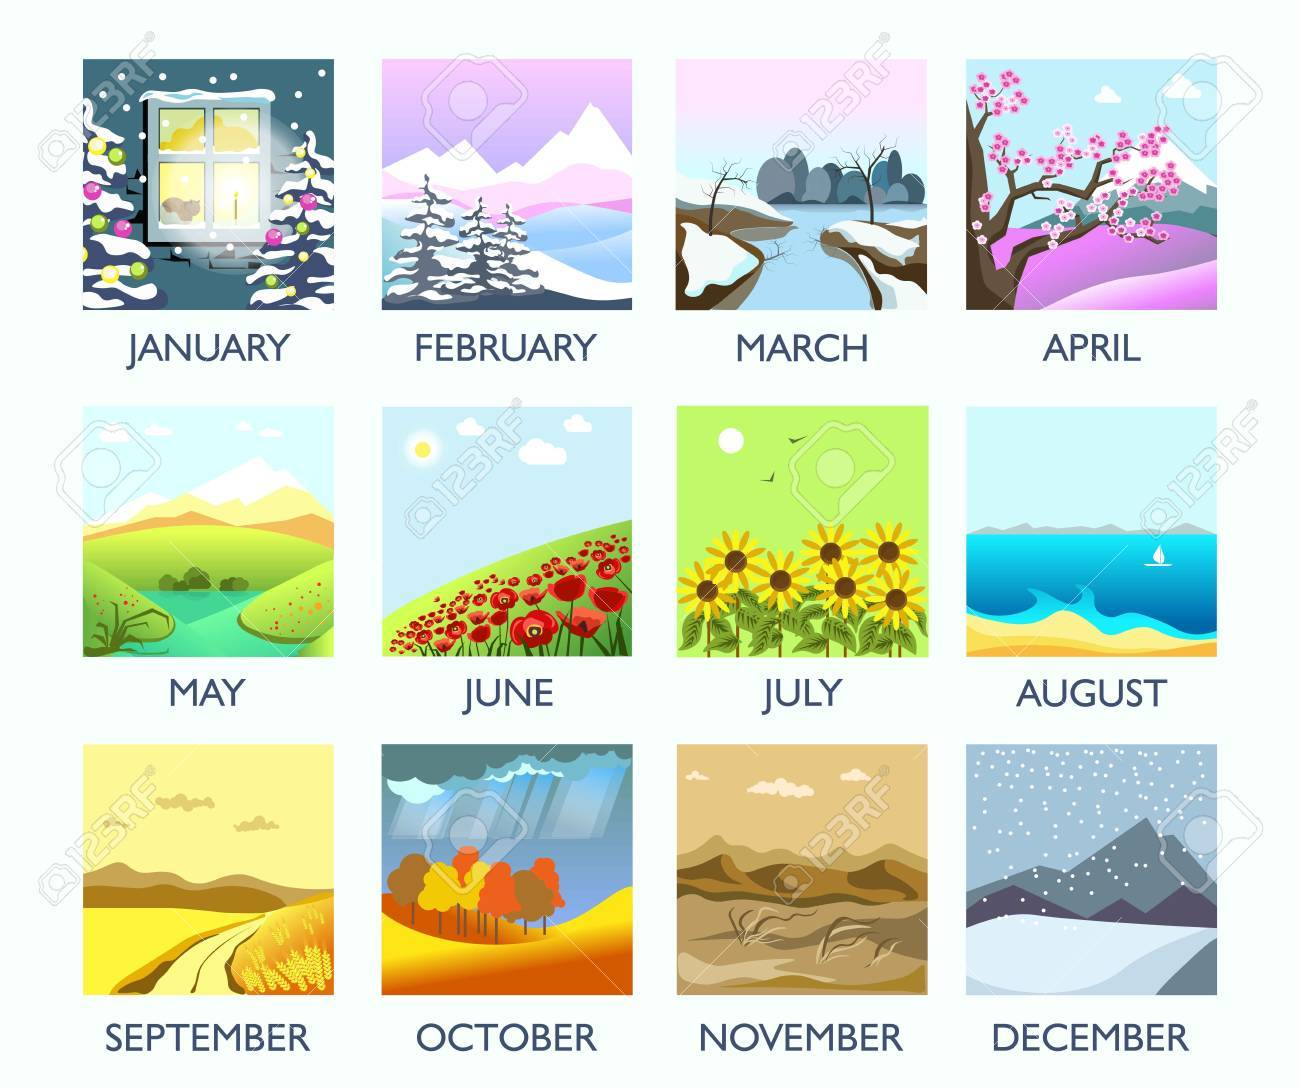 Four seasons month nature landscape winter, summer, autumn, spring vector flat scenery - 87000885